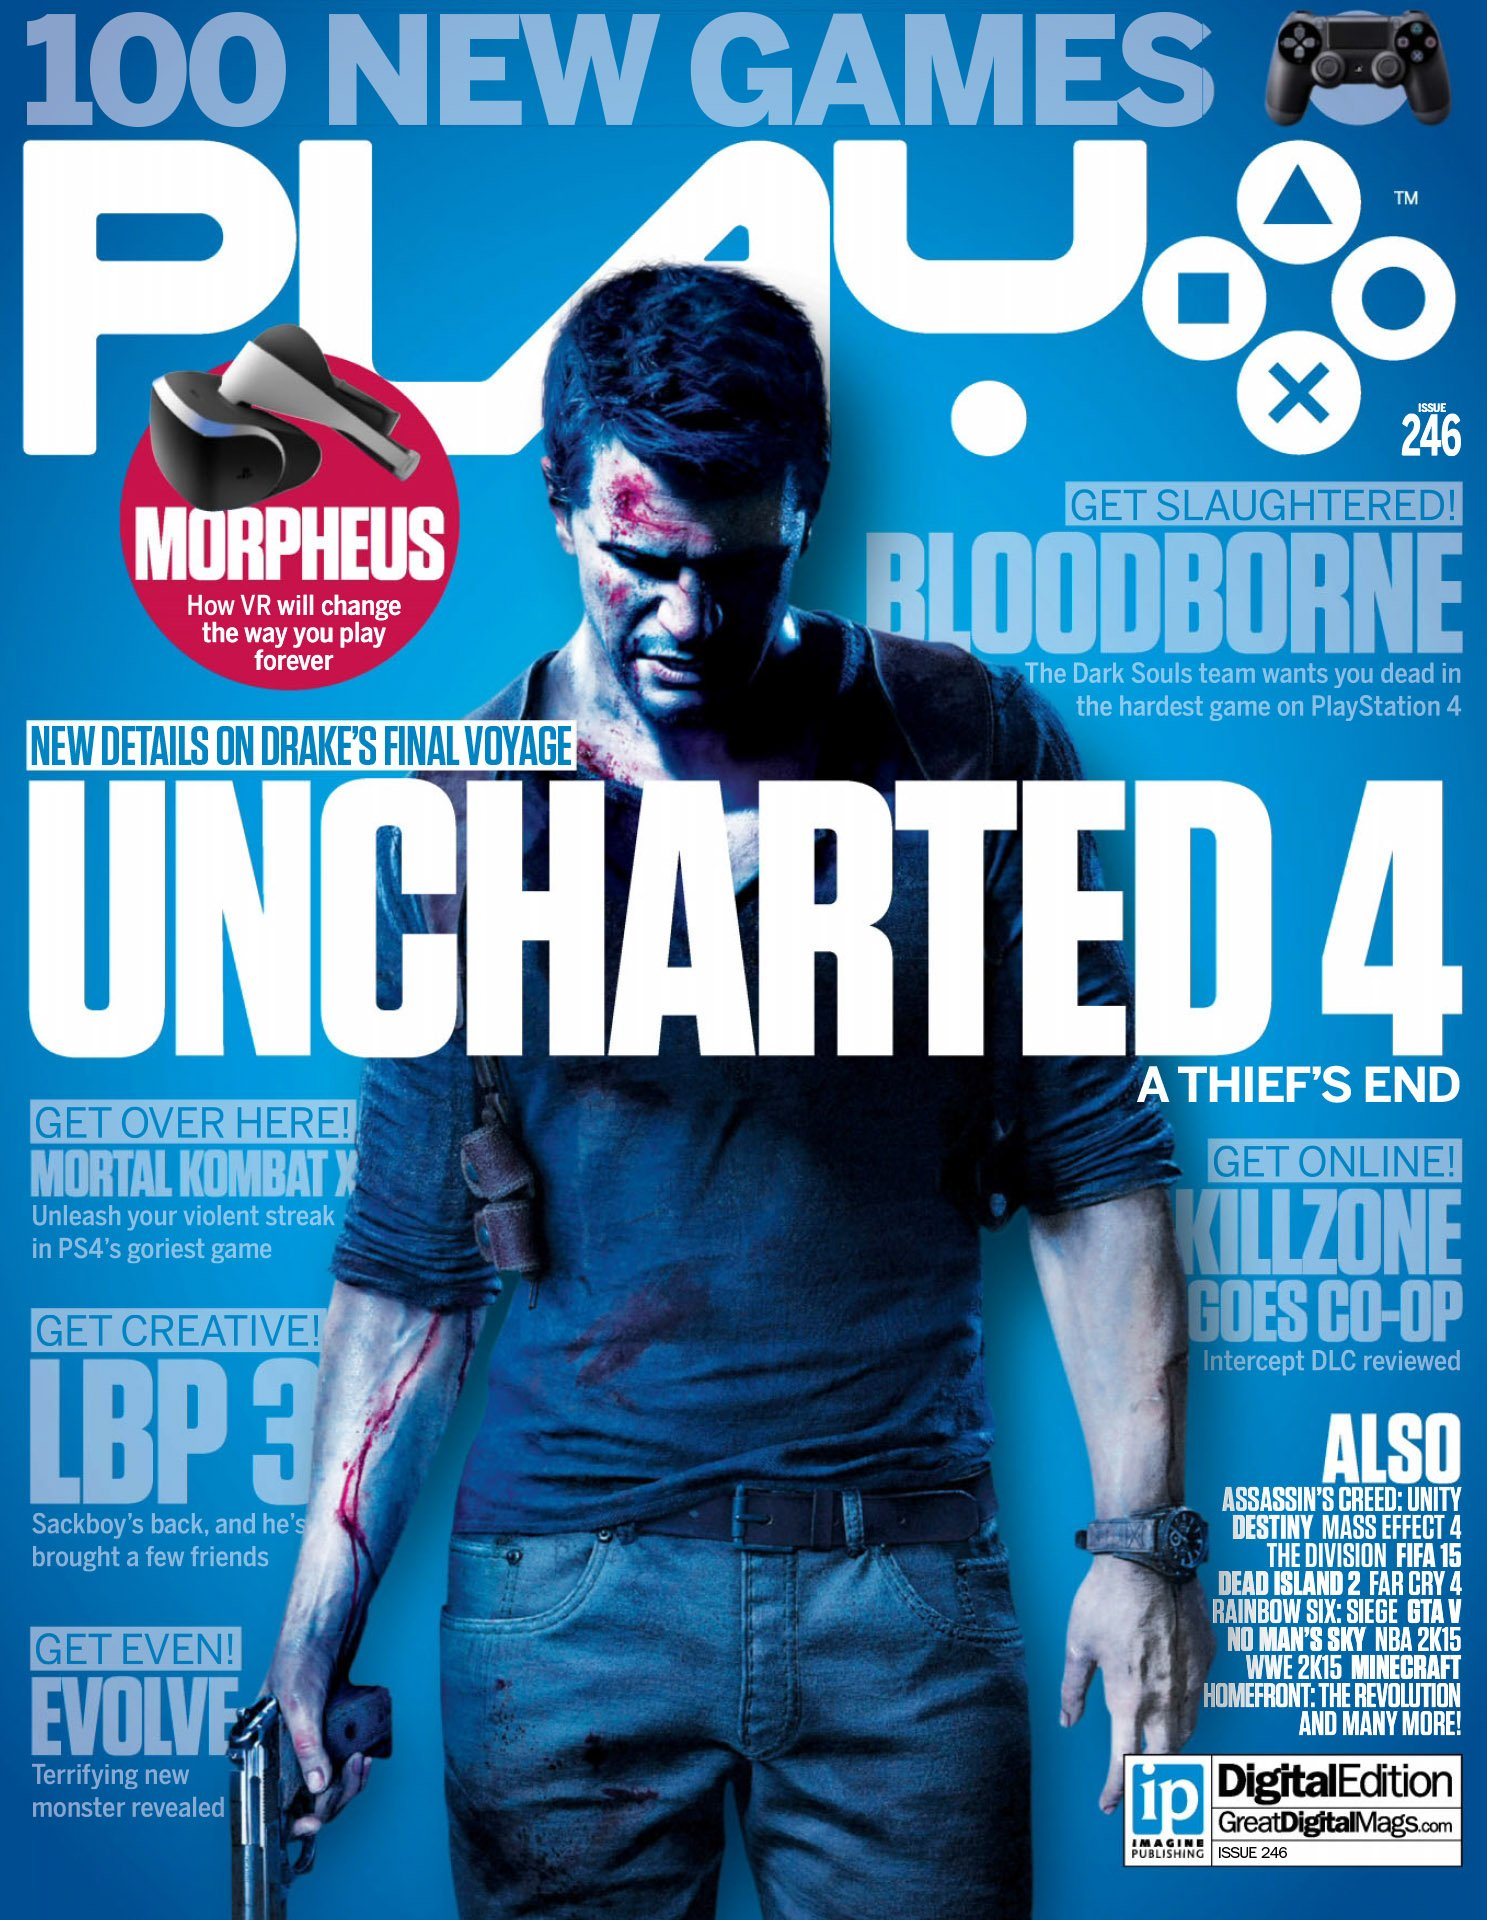 Play UK 246 (August 2014)